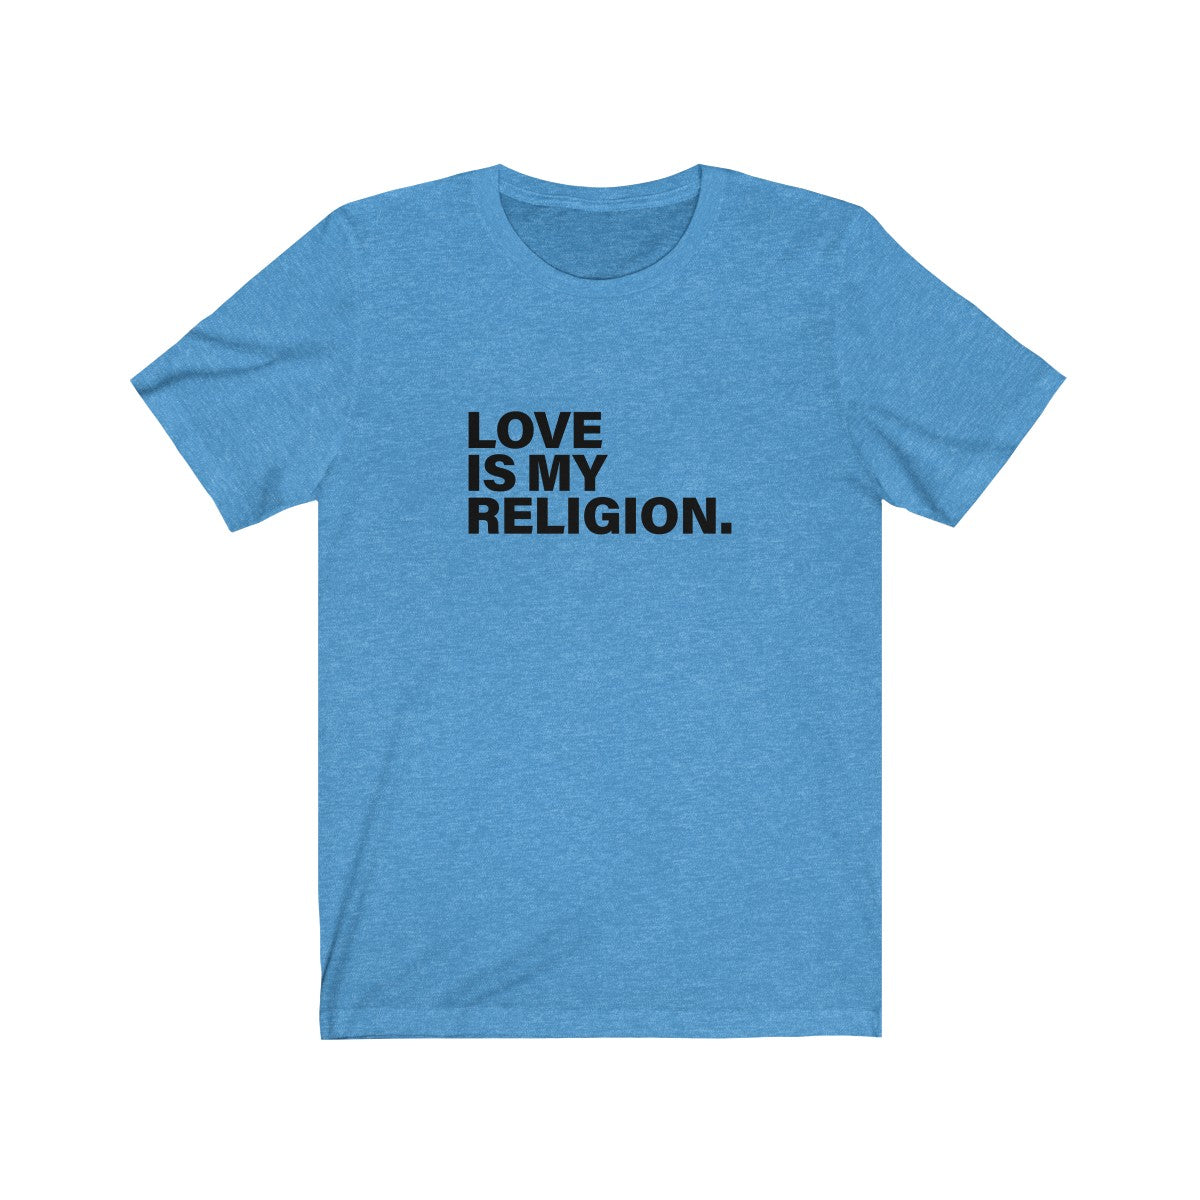 Love Is My Religion Unisex Jersey Short Sleeve Tee - LIGHT COLORS